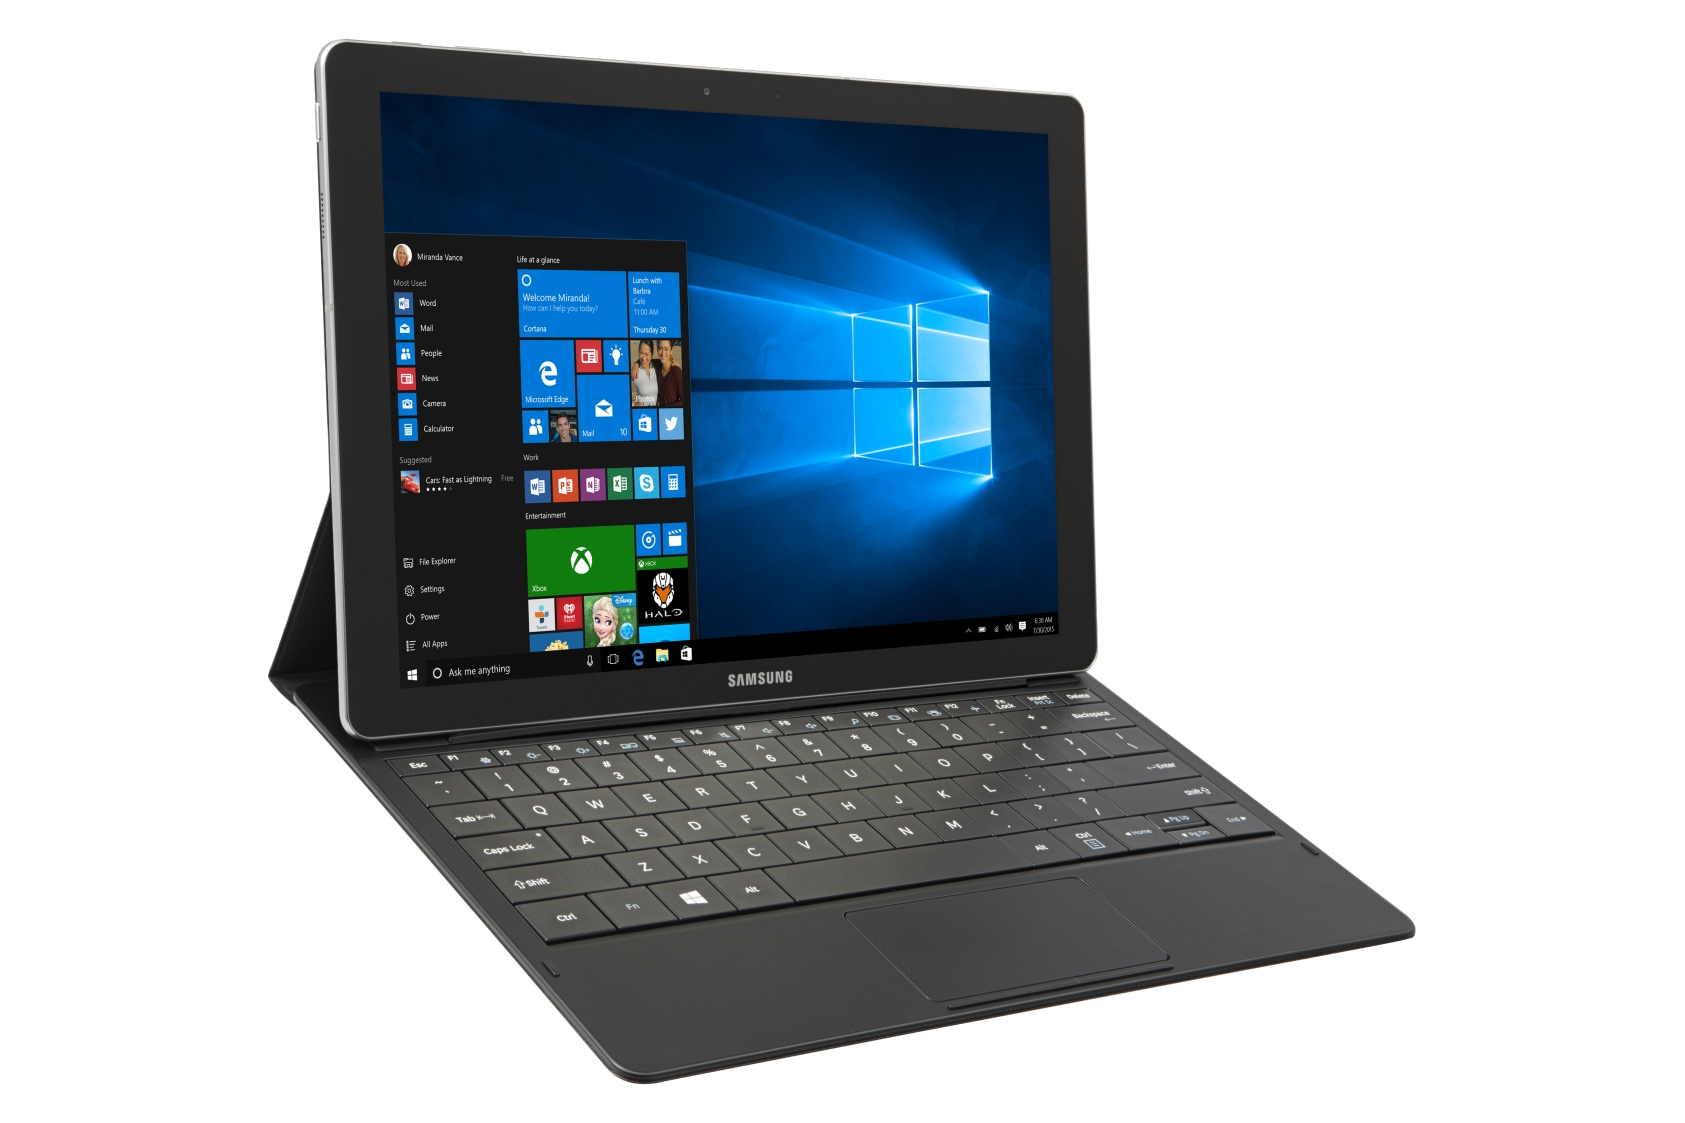 Samsung galaxy tabpro s sm w700 windows 10 2 in 1 unveiled for Samsung galaxy s tablet